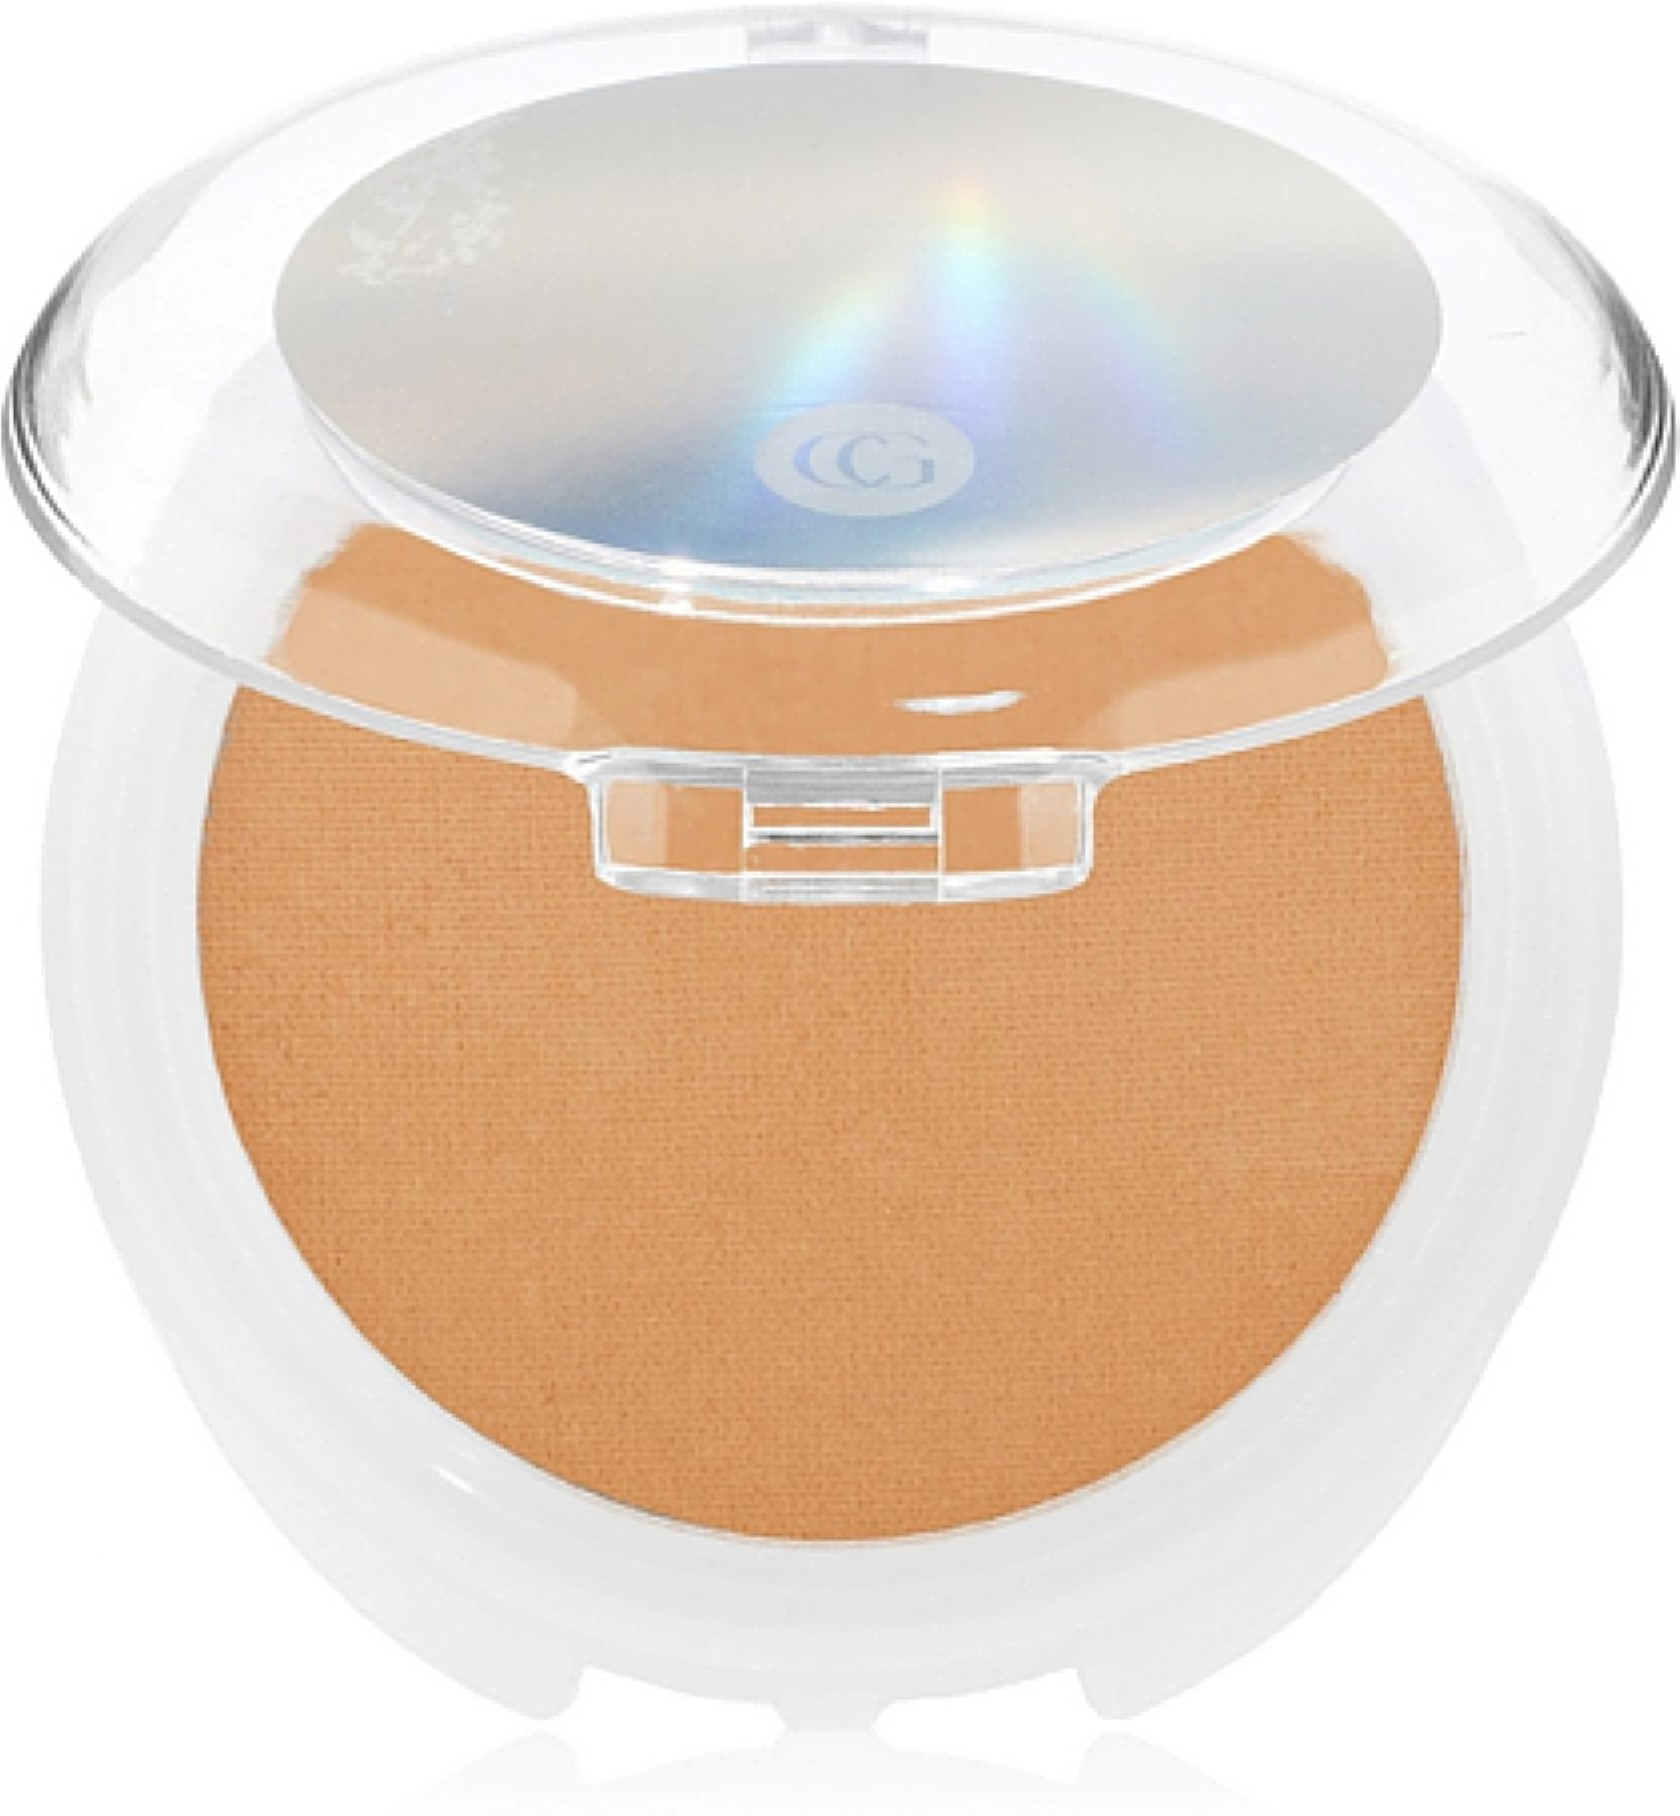 CoverGirl Trublend Minerals Pressed Powder, Translucent Honey [3] 0.39 oz (Pack of 6)